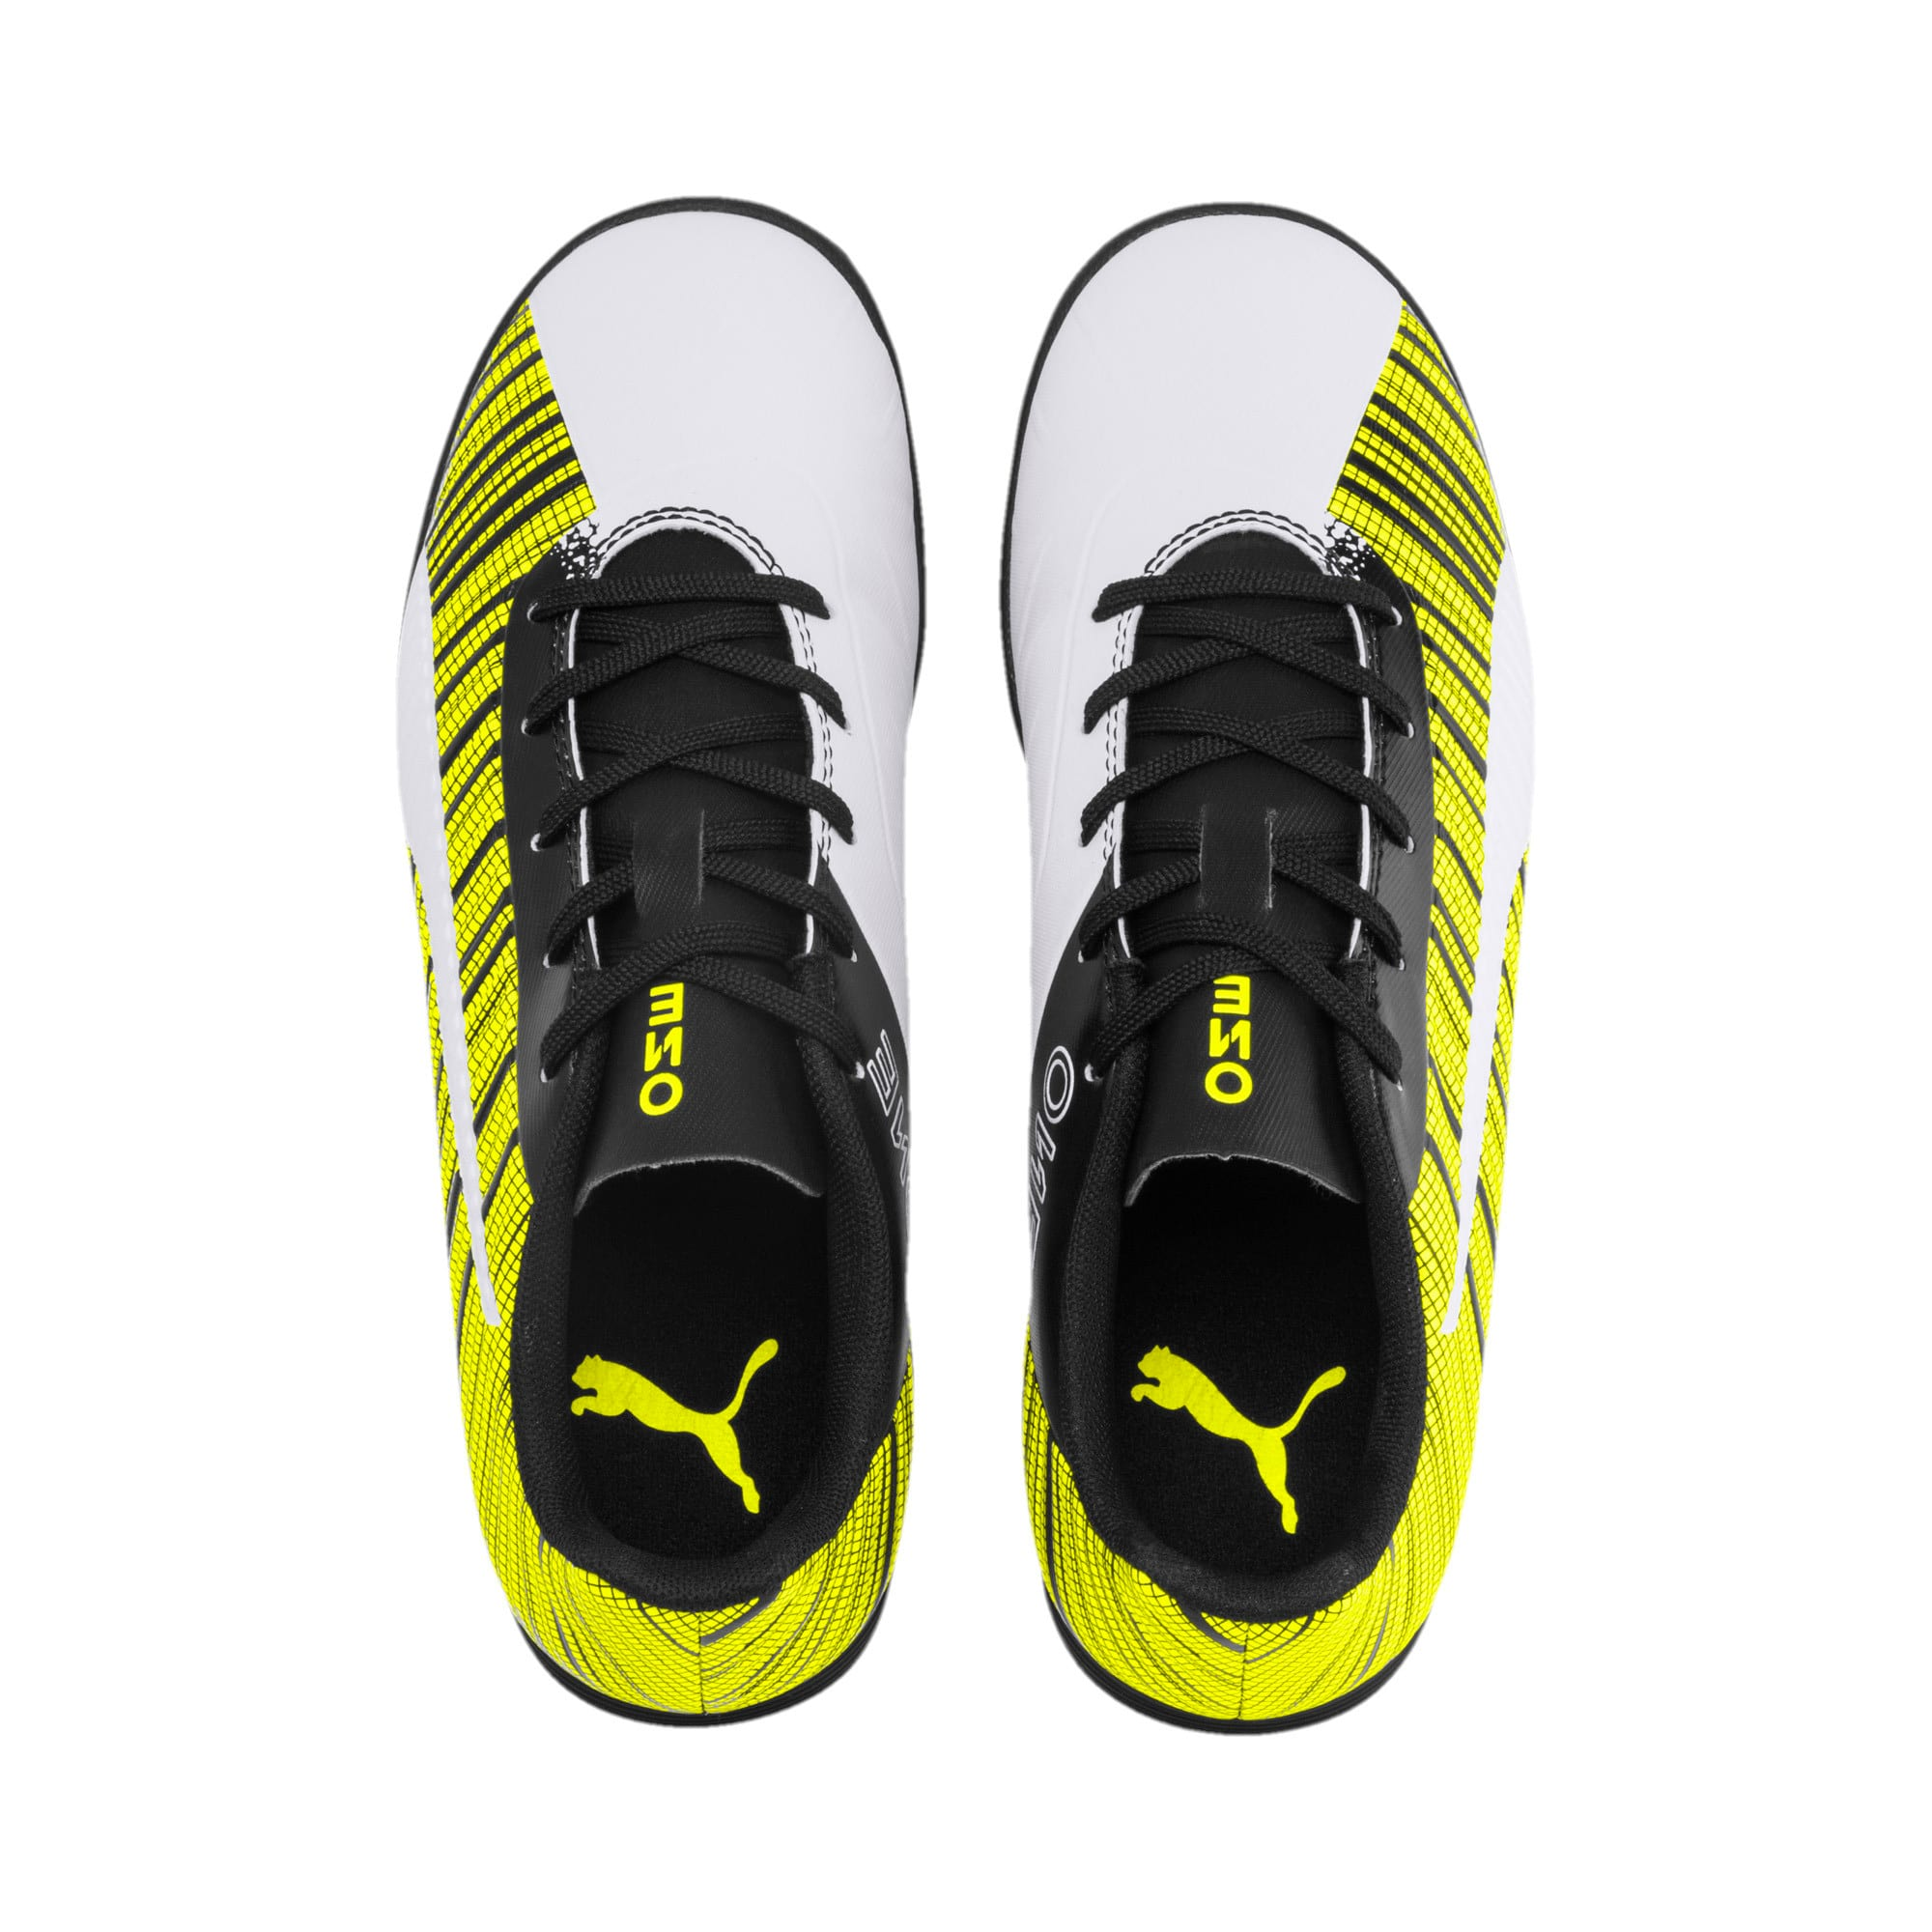 Thumbnail 6 of PUMA ONE 5.4 TT Youth Football Boots, White-Black-Yellow Alert, medium